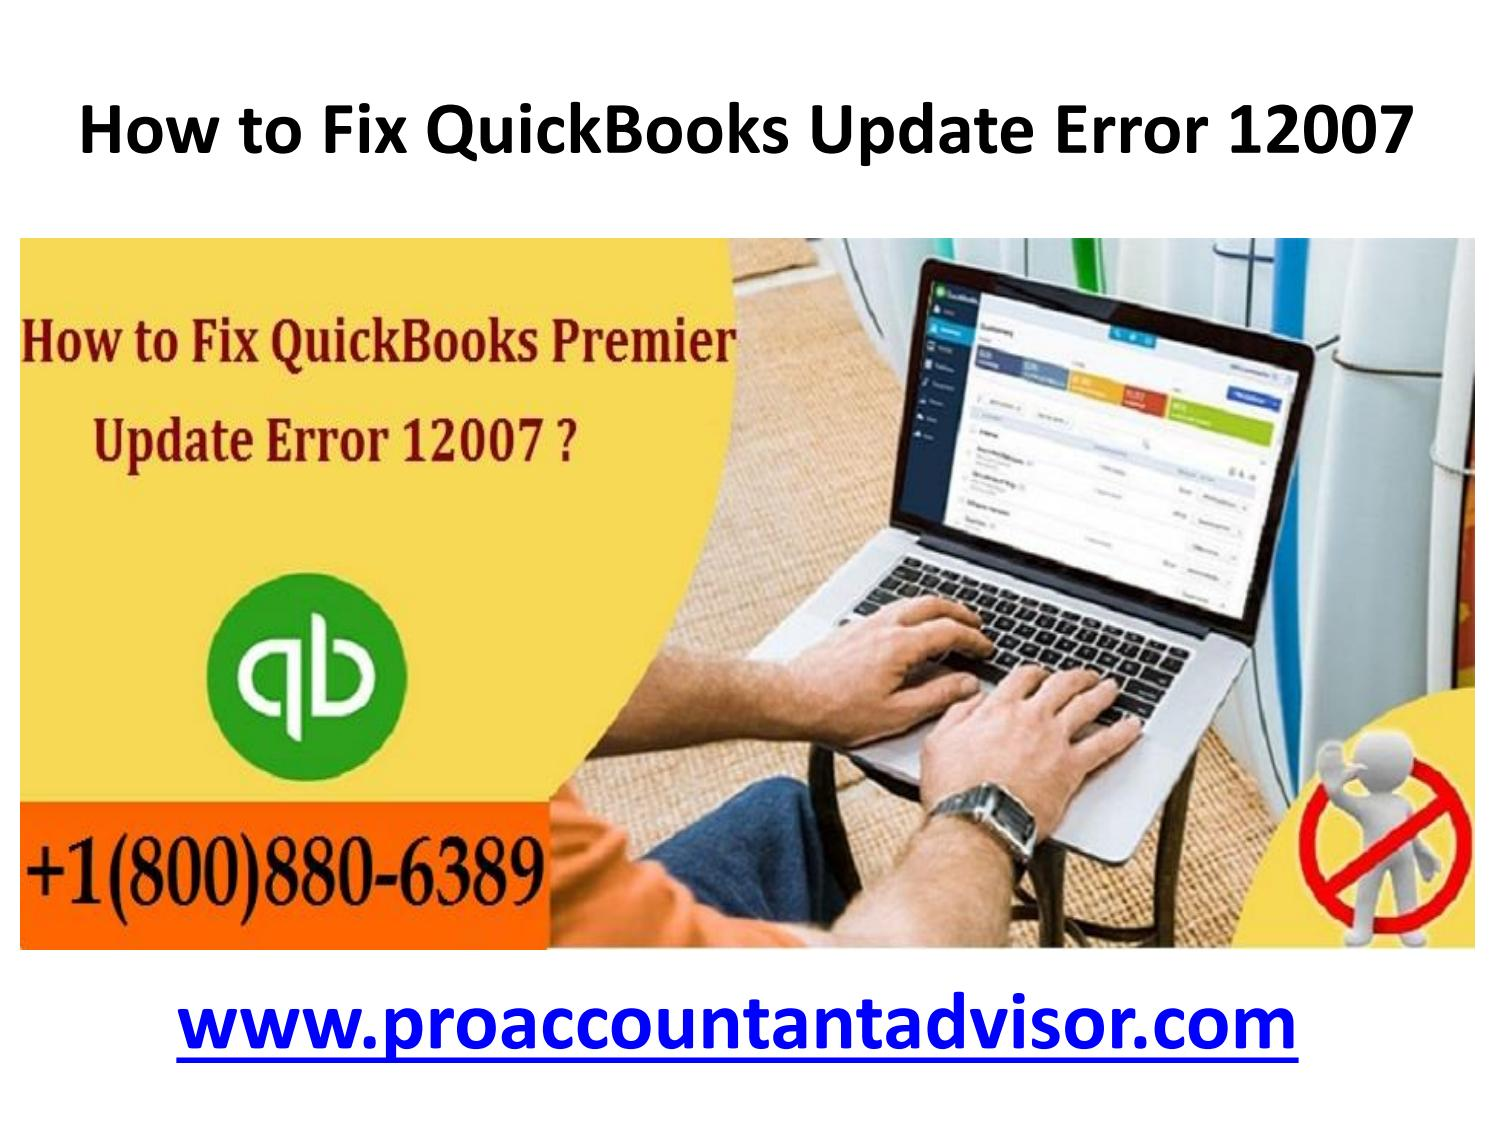 quickbooks update